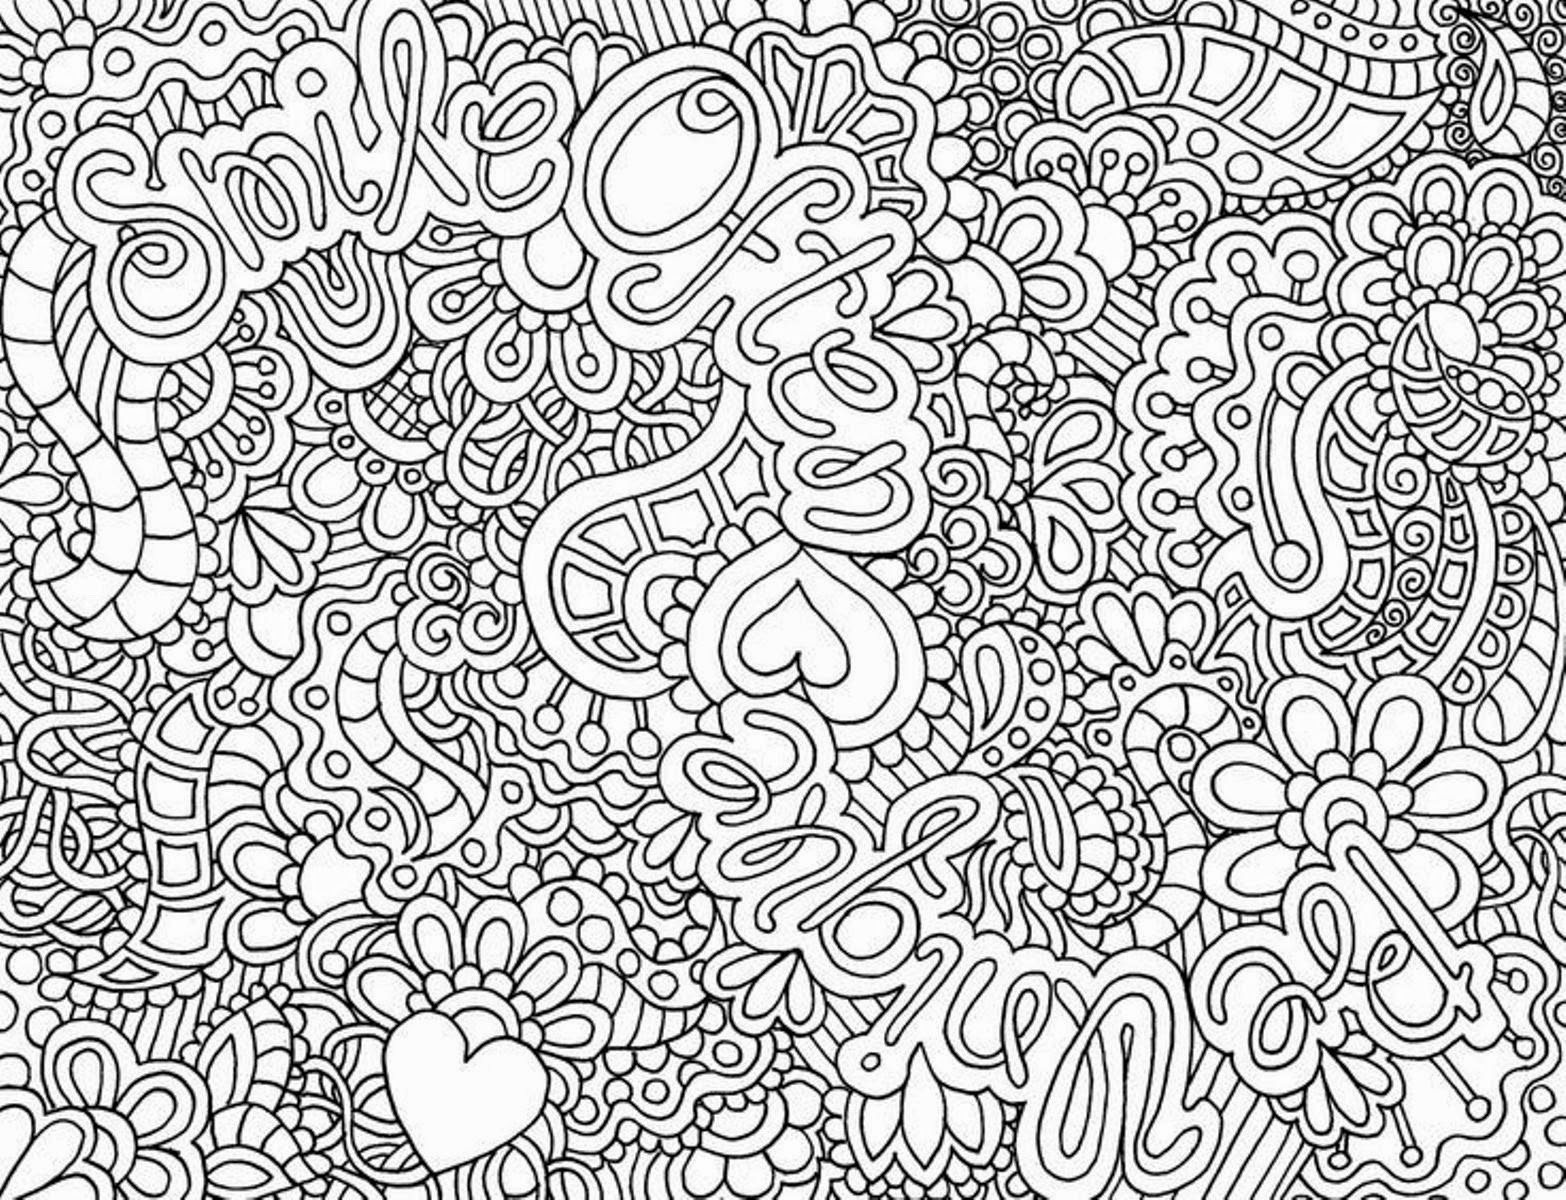 Intricate Coloring Pages For Kids  Coloring Pages Difficult but Fun Coloring Pages Free and